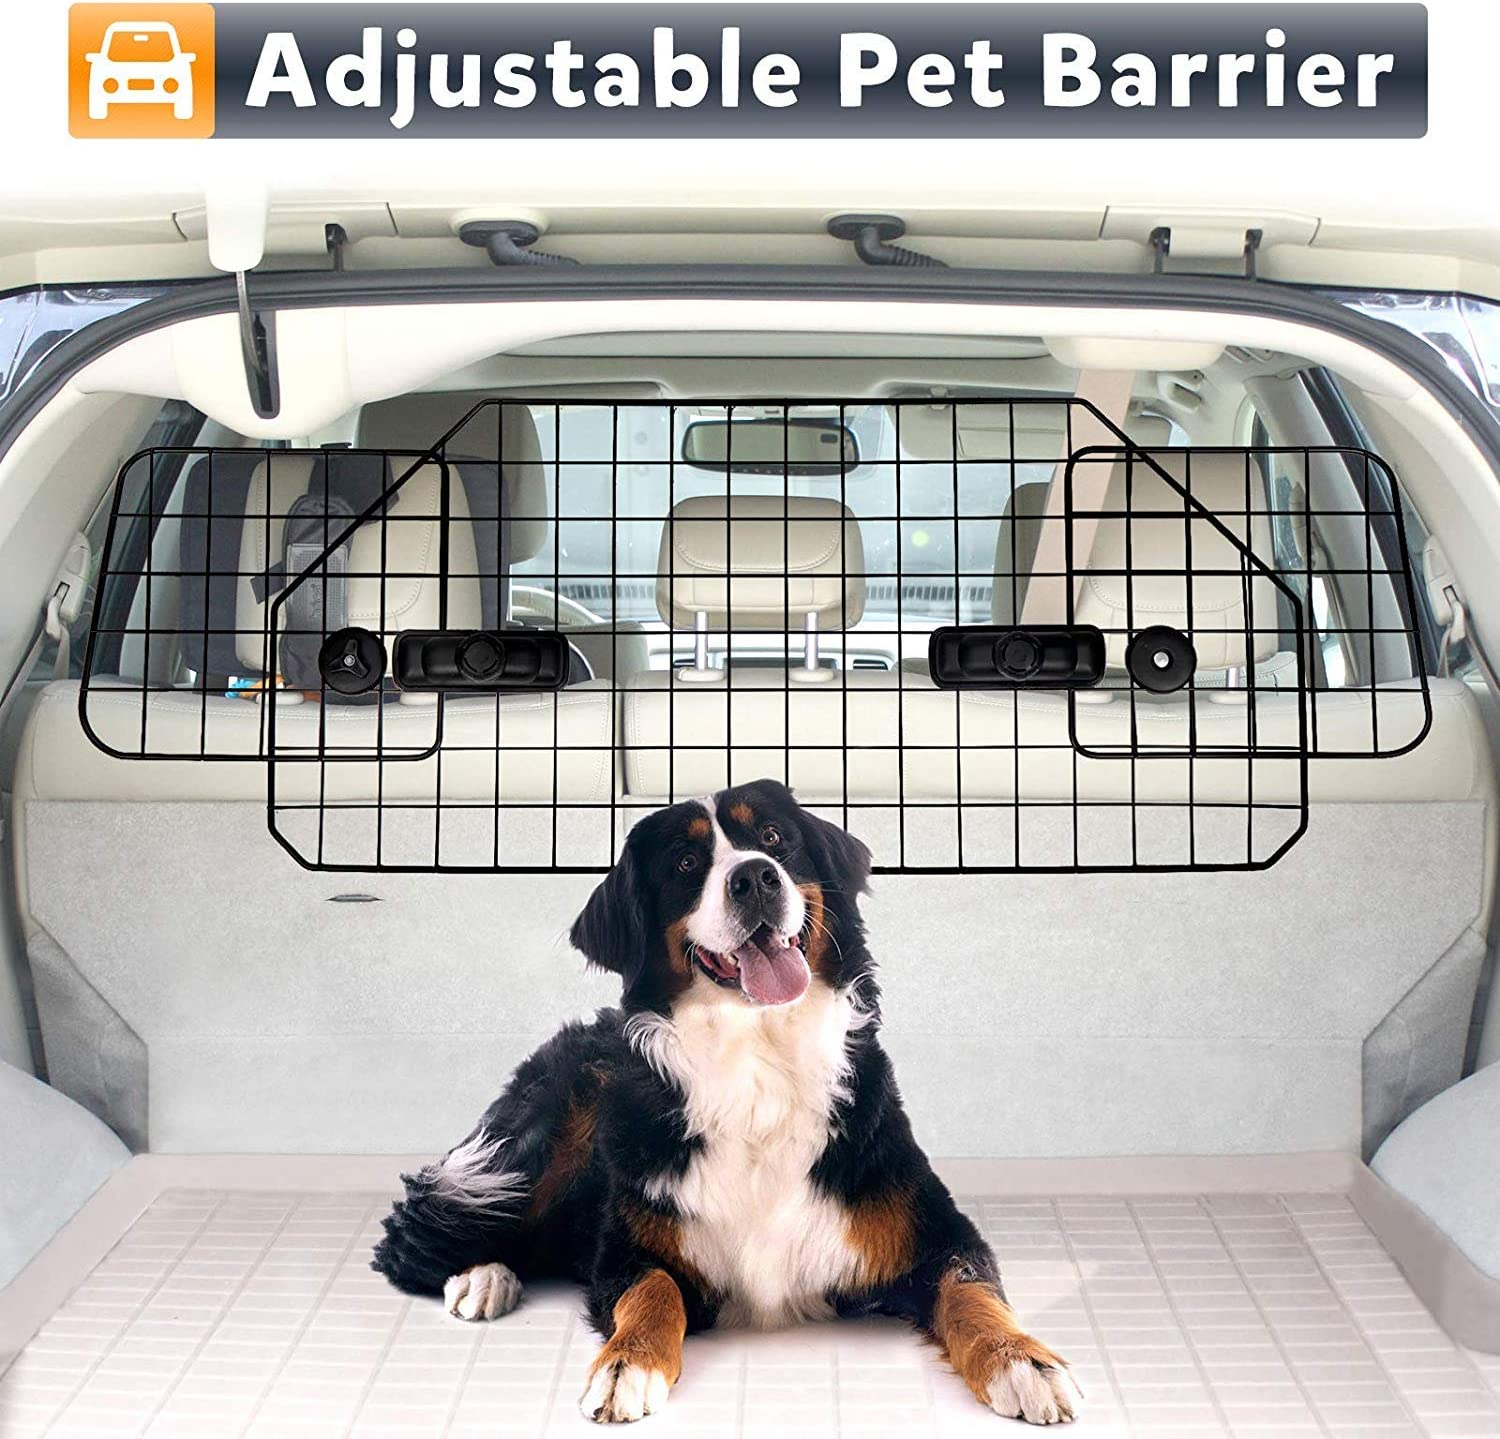 ZenStyle Dog Car Barrier Pet Fence for SUV Vehicle Cargo Jeep,Adjustable Pets Car Divider Wire Dog Gate